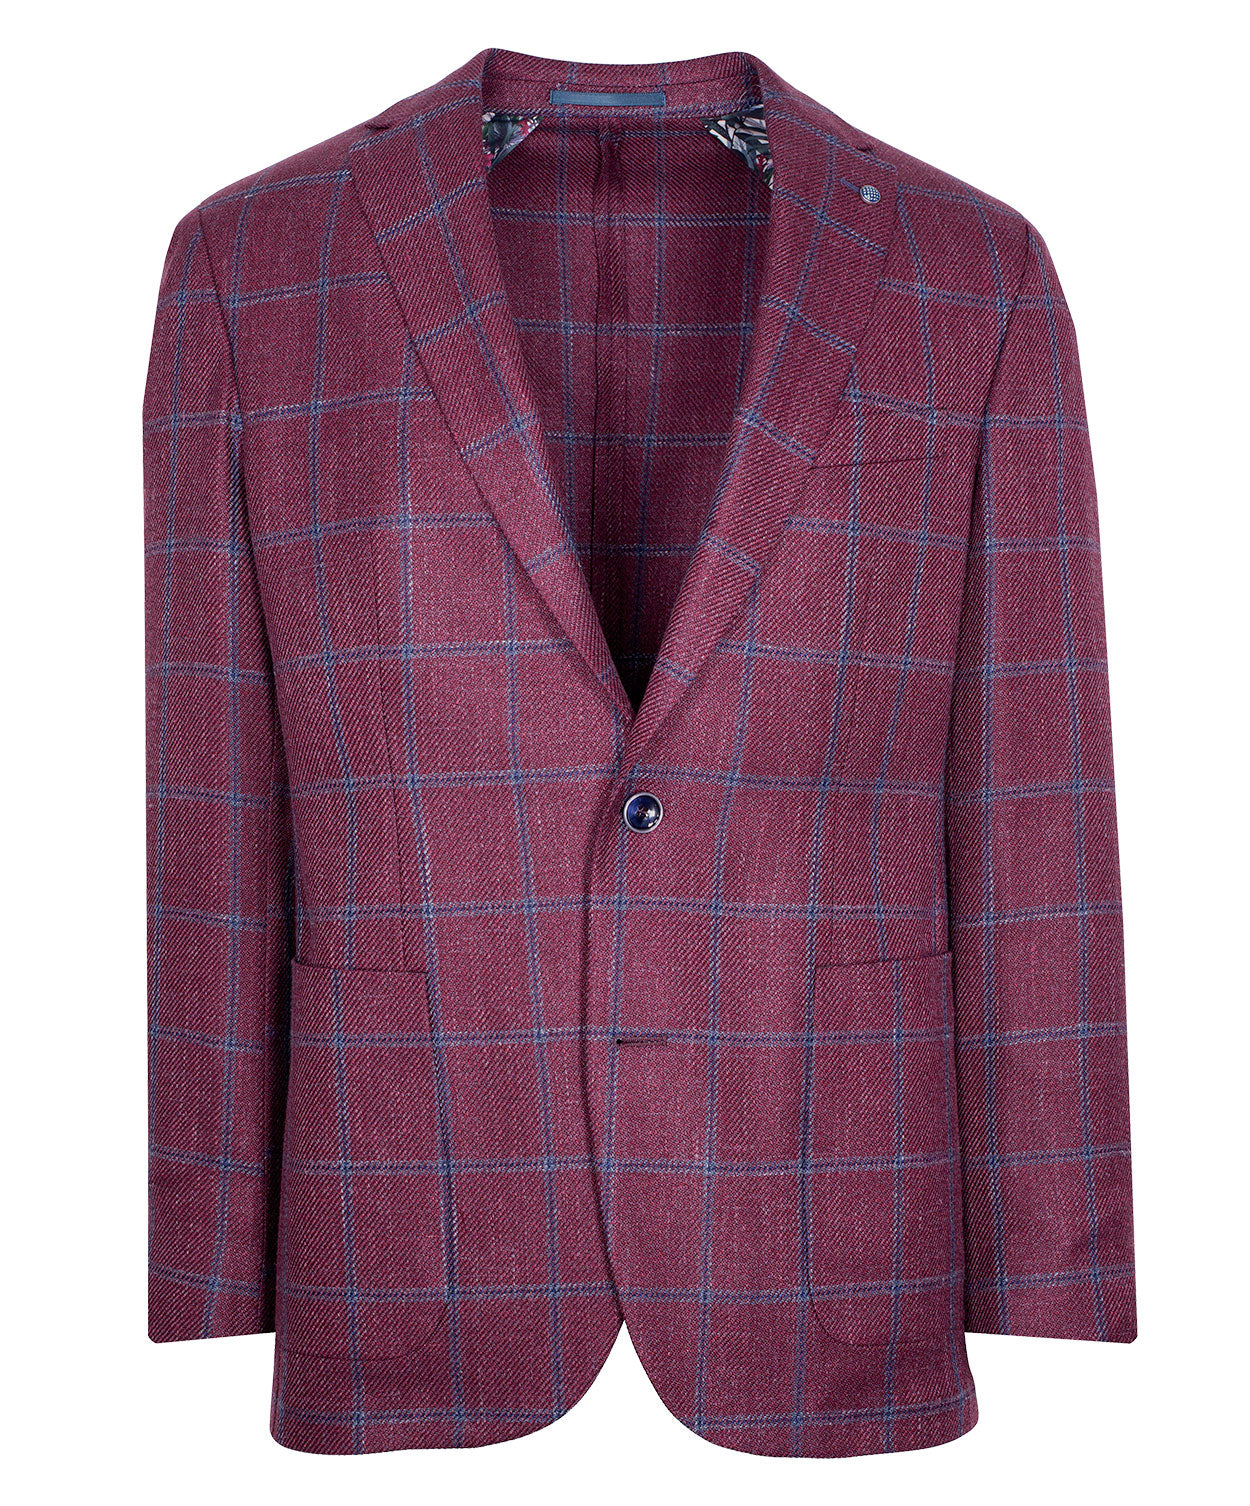 Red/Blue Window Pane Sport Jacket